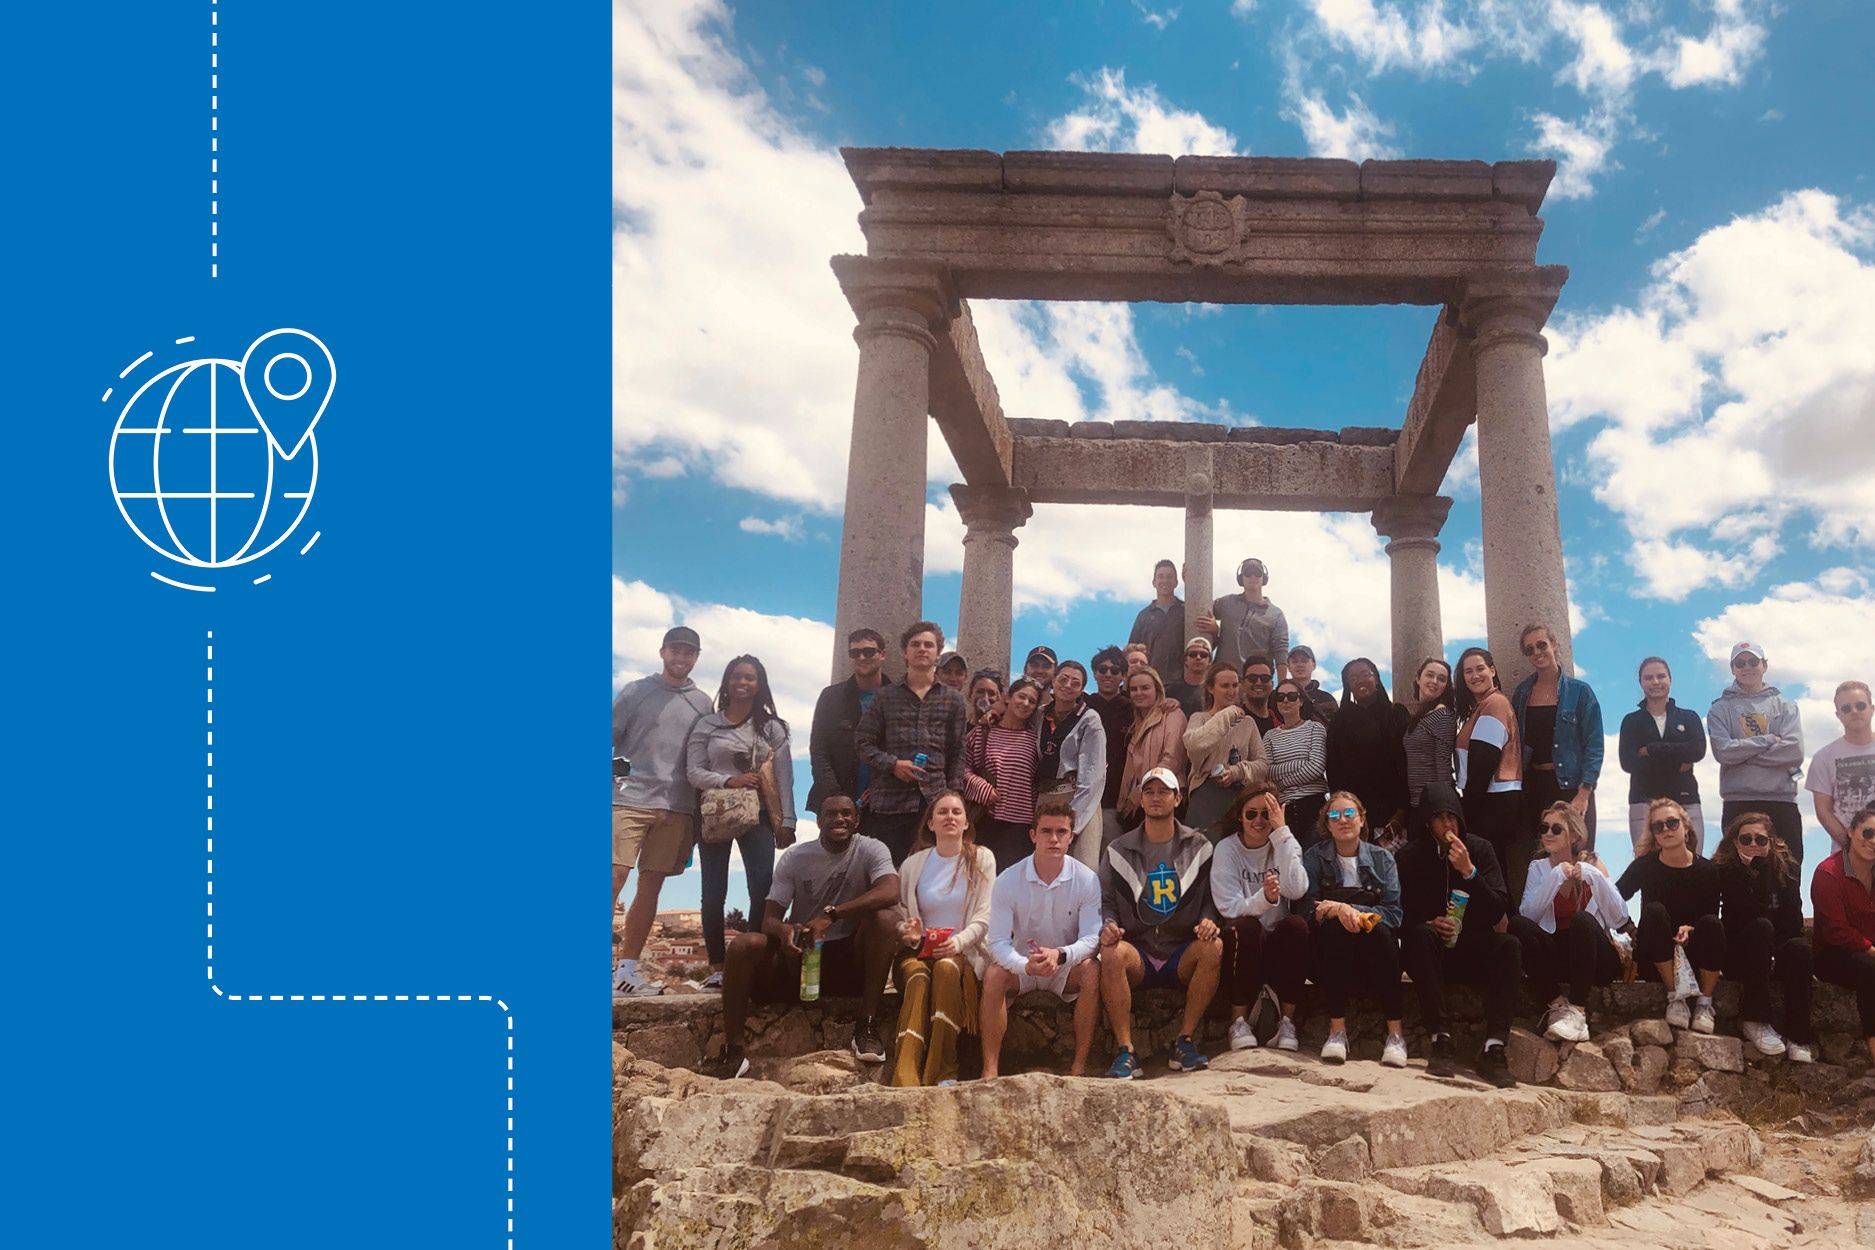 Shannon Sullivan and fellow classmates studying abroad in Spain.